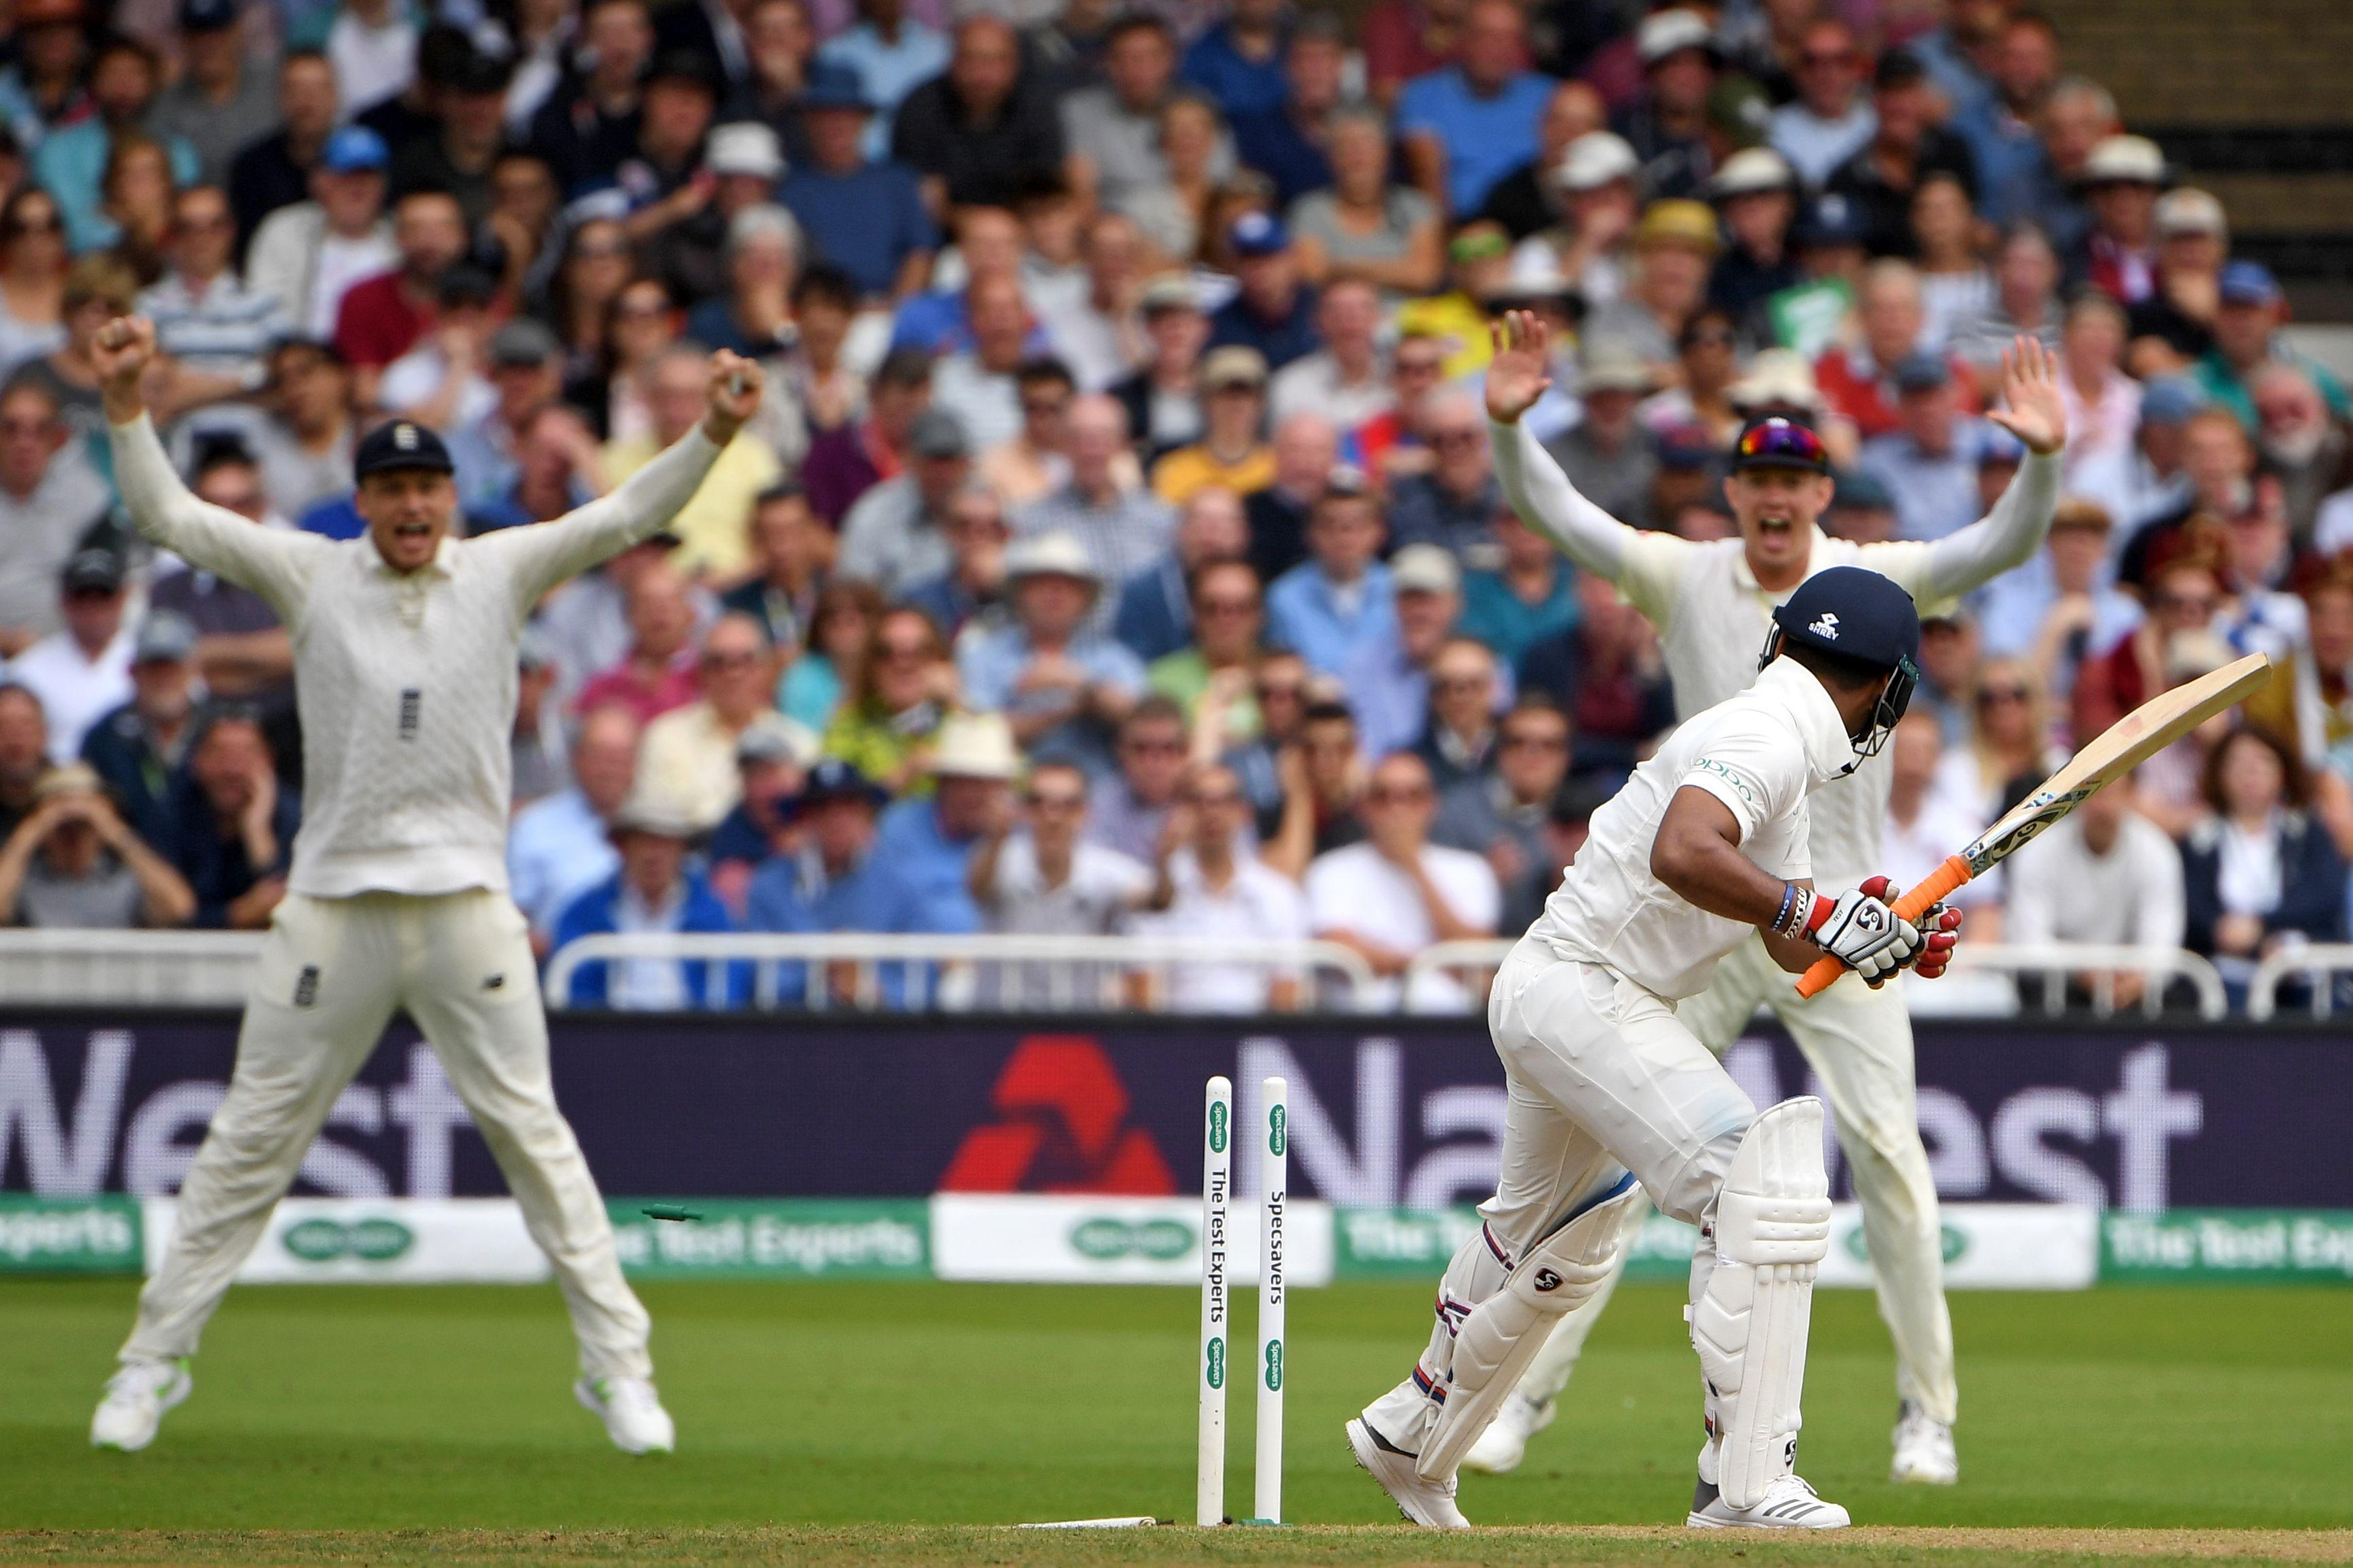 Stuart Broad confronted Rishabh Pant after bowling him on Sunday